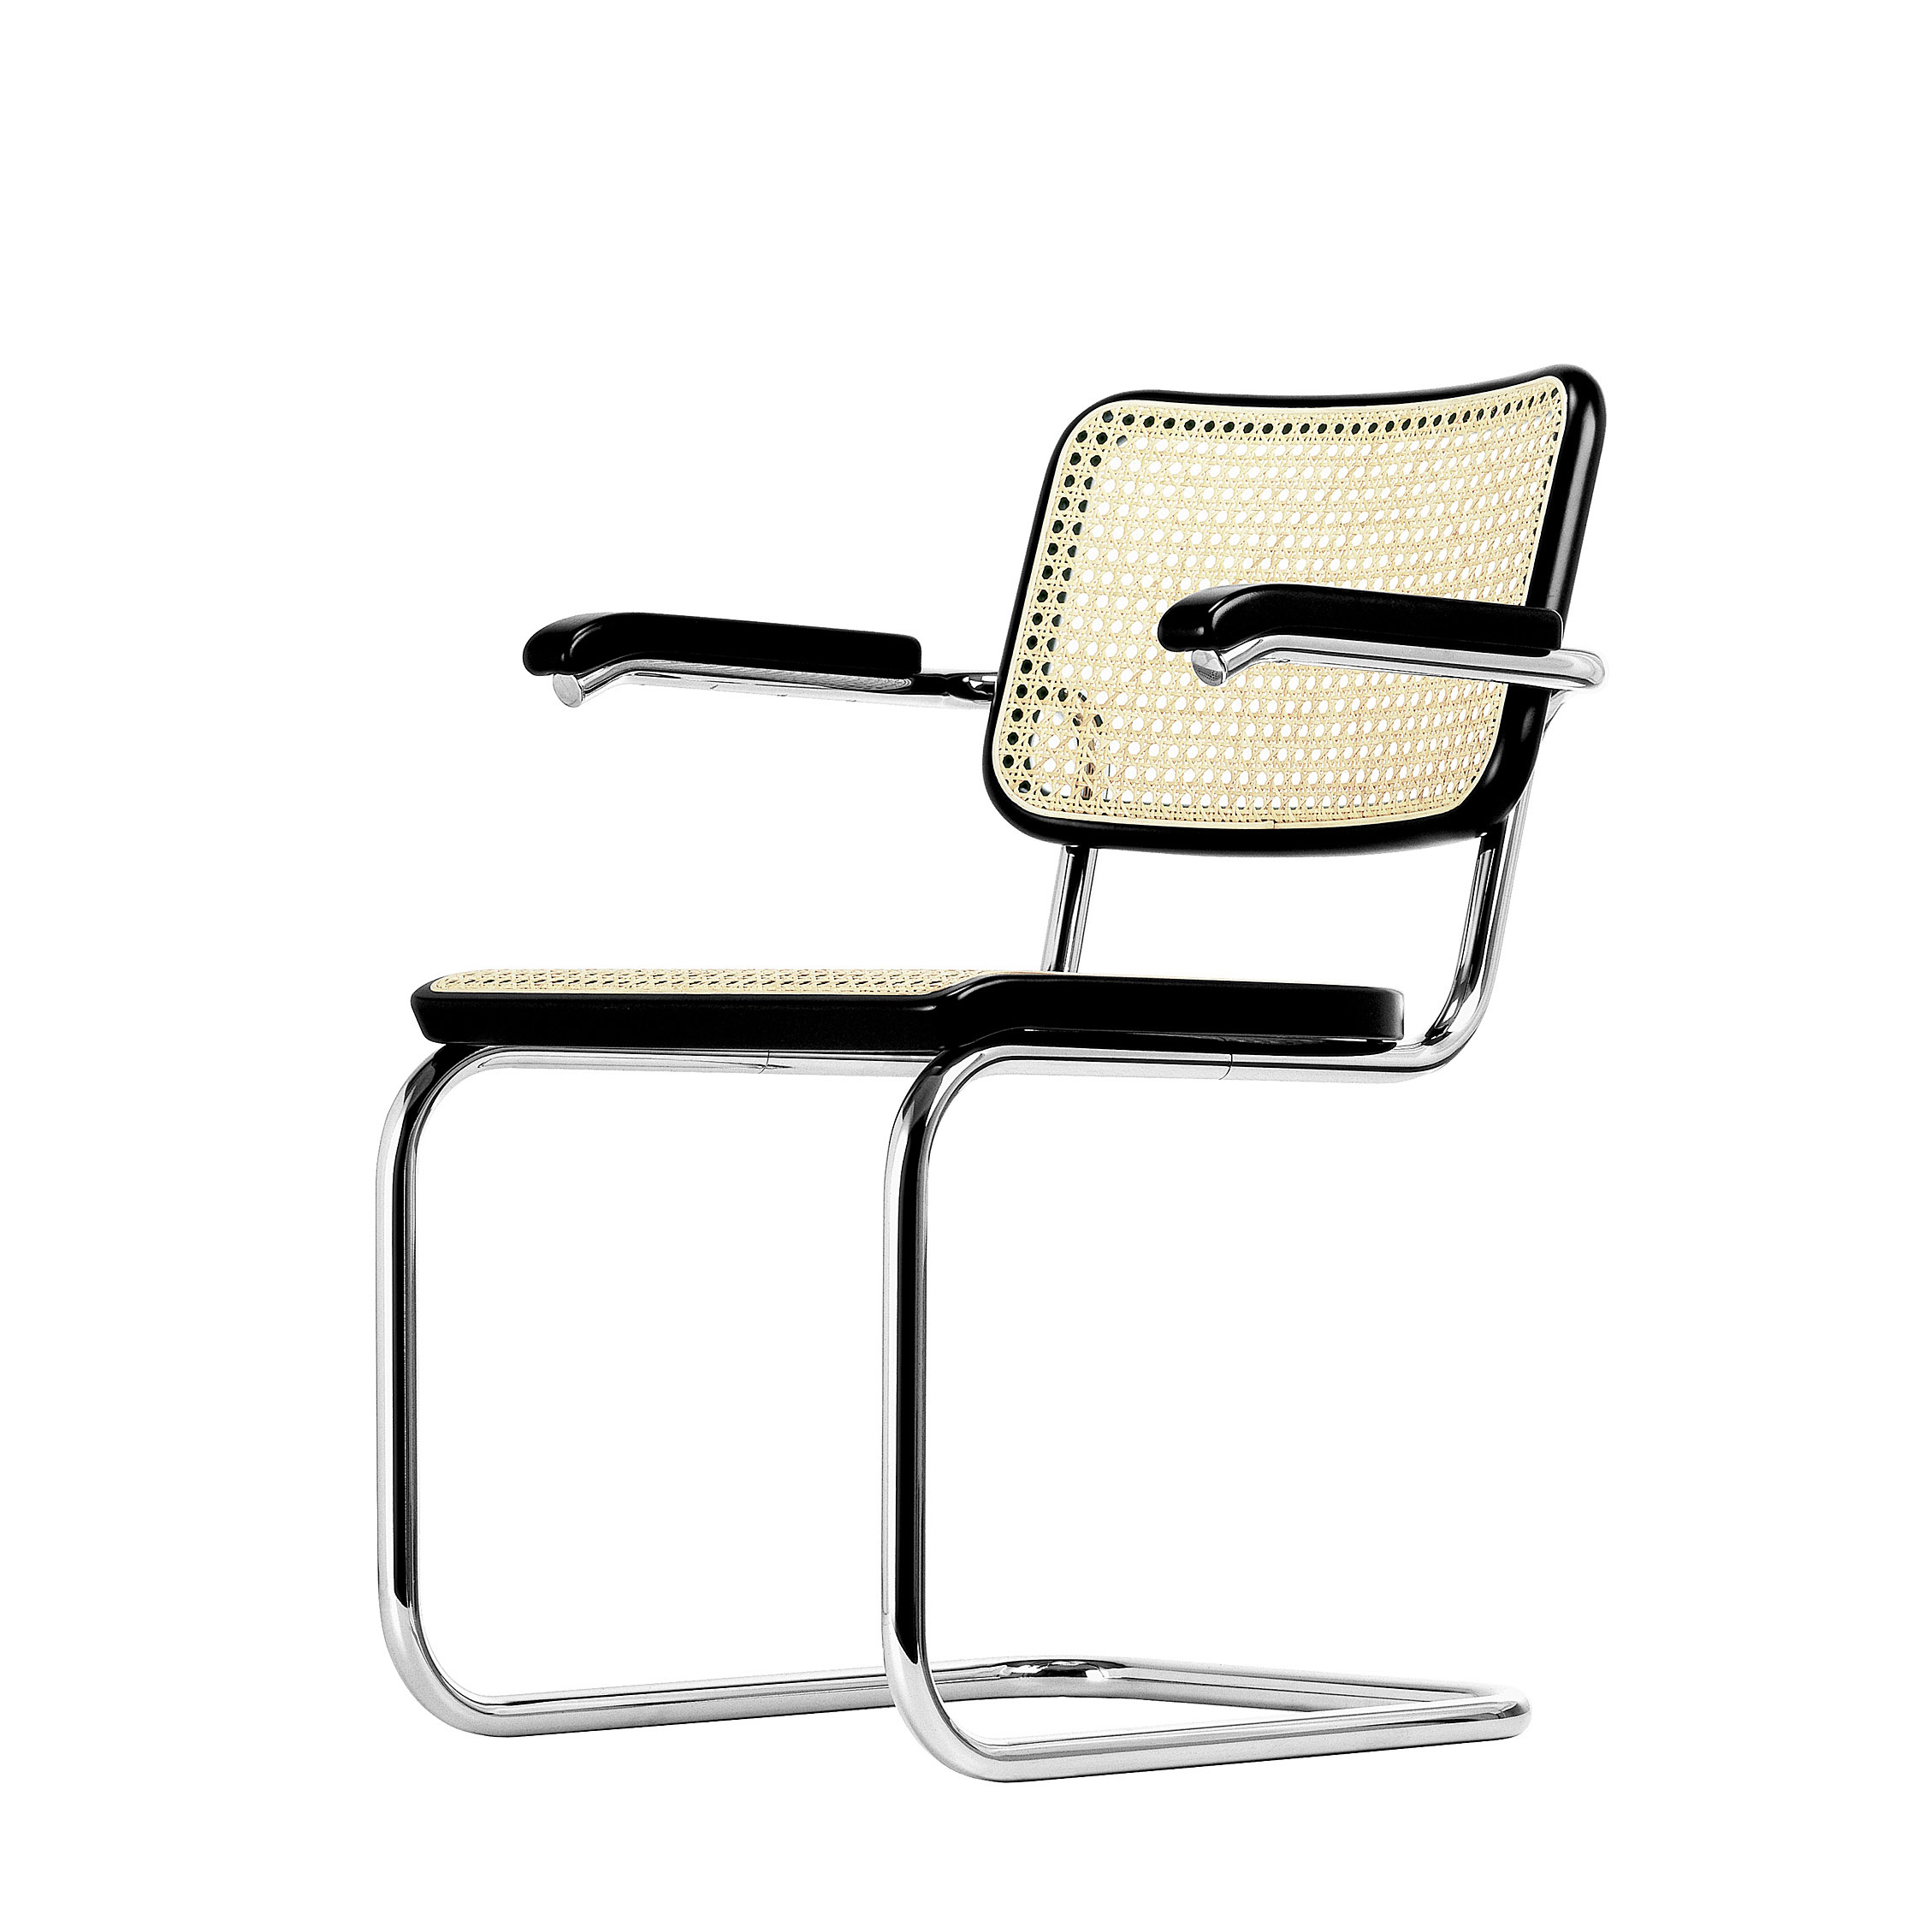 Thonet stuhl freischwinger s 64 pro office shop for Stuhl design thonet